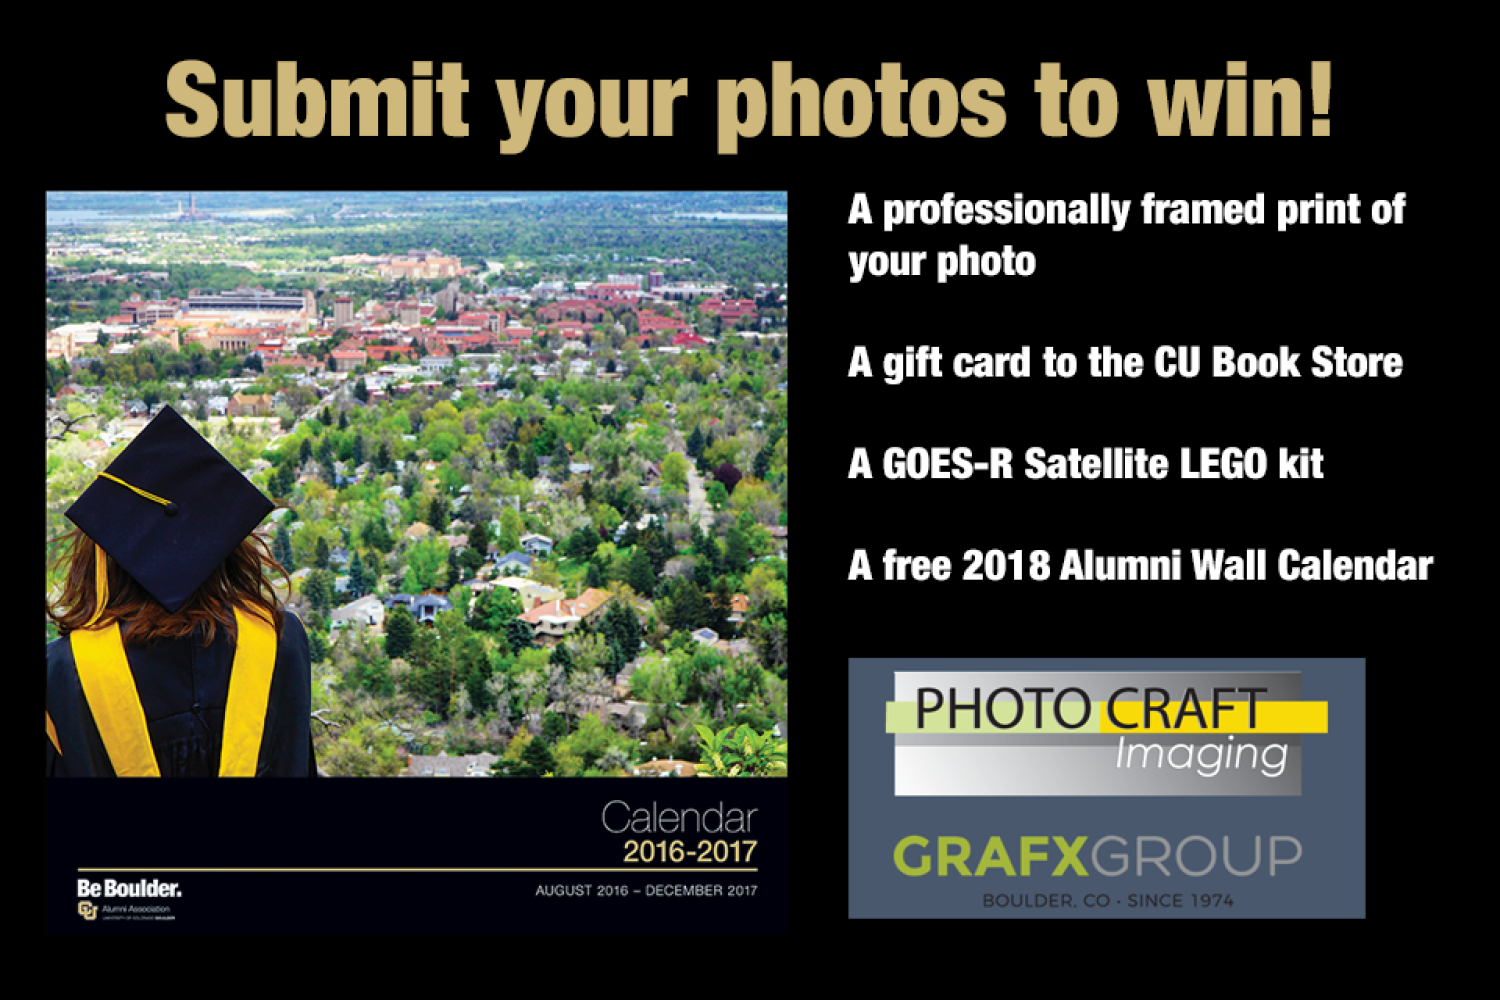 Enter to win the Photo Craft Imaging Photo Contest today.